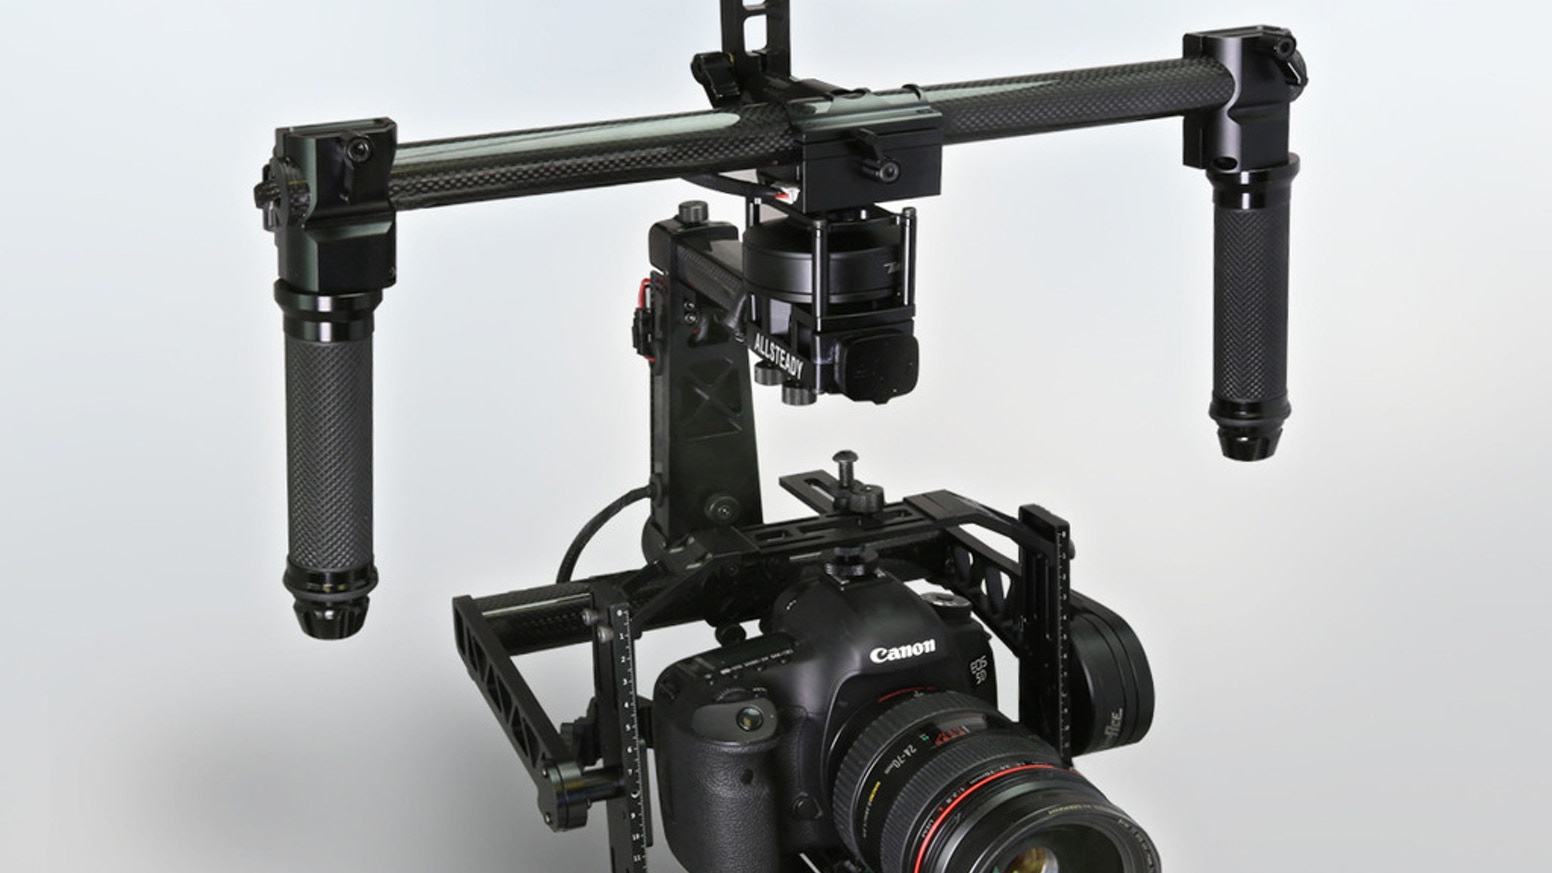 The AllSteady-6Pro combines unprecedented performance for a wide range of cameras with follow focus options at ½ the weight of Ronin.